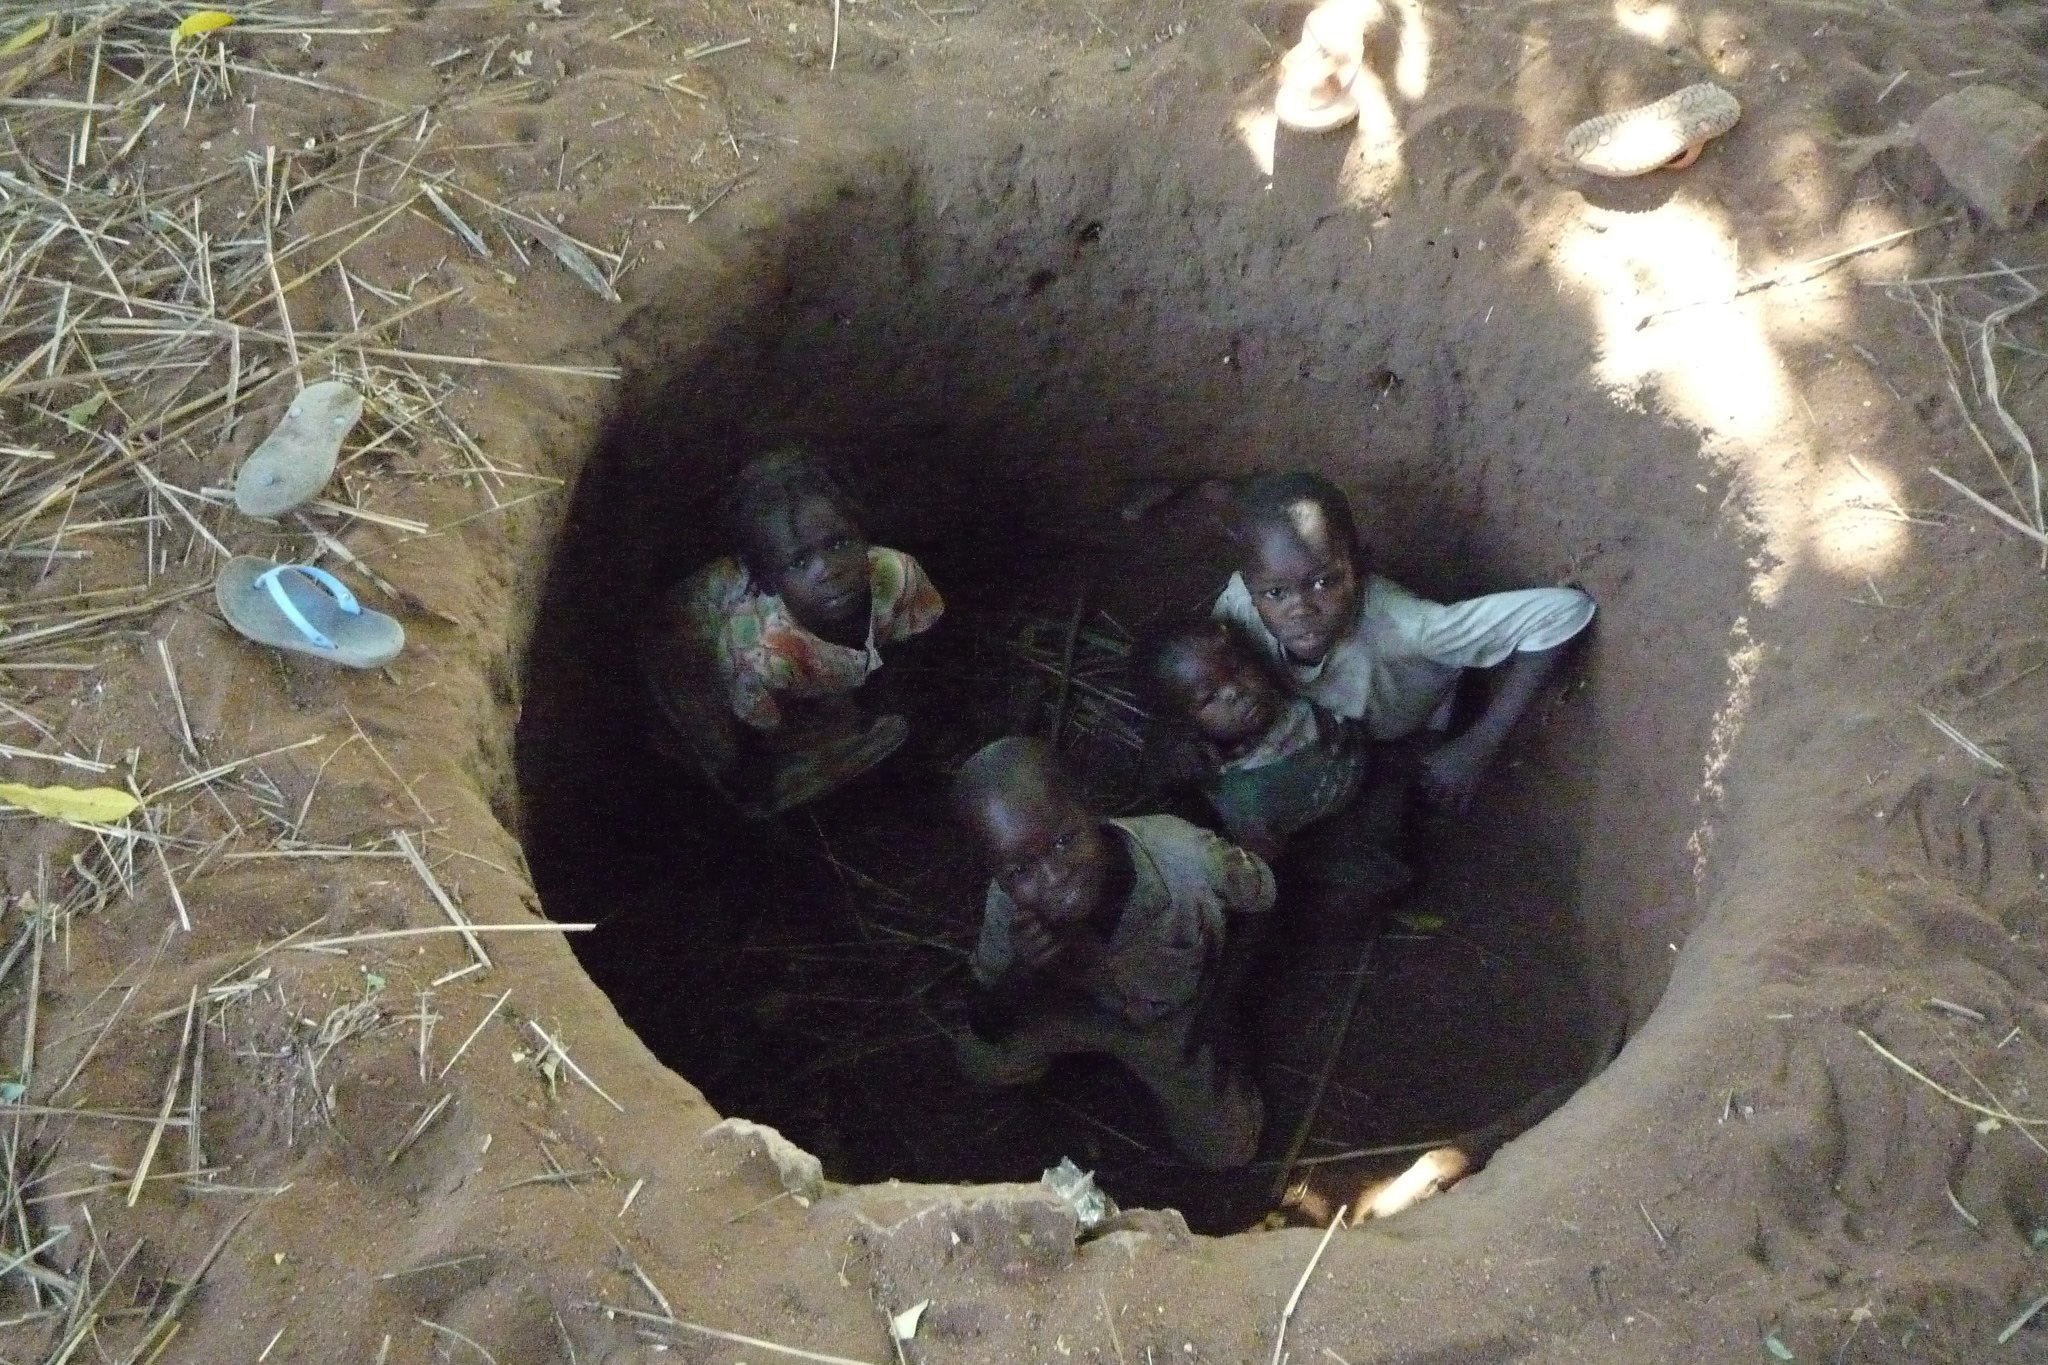 Nuba children shelter in a foxhole at the first sound of an Antonov bomber passing overhead